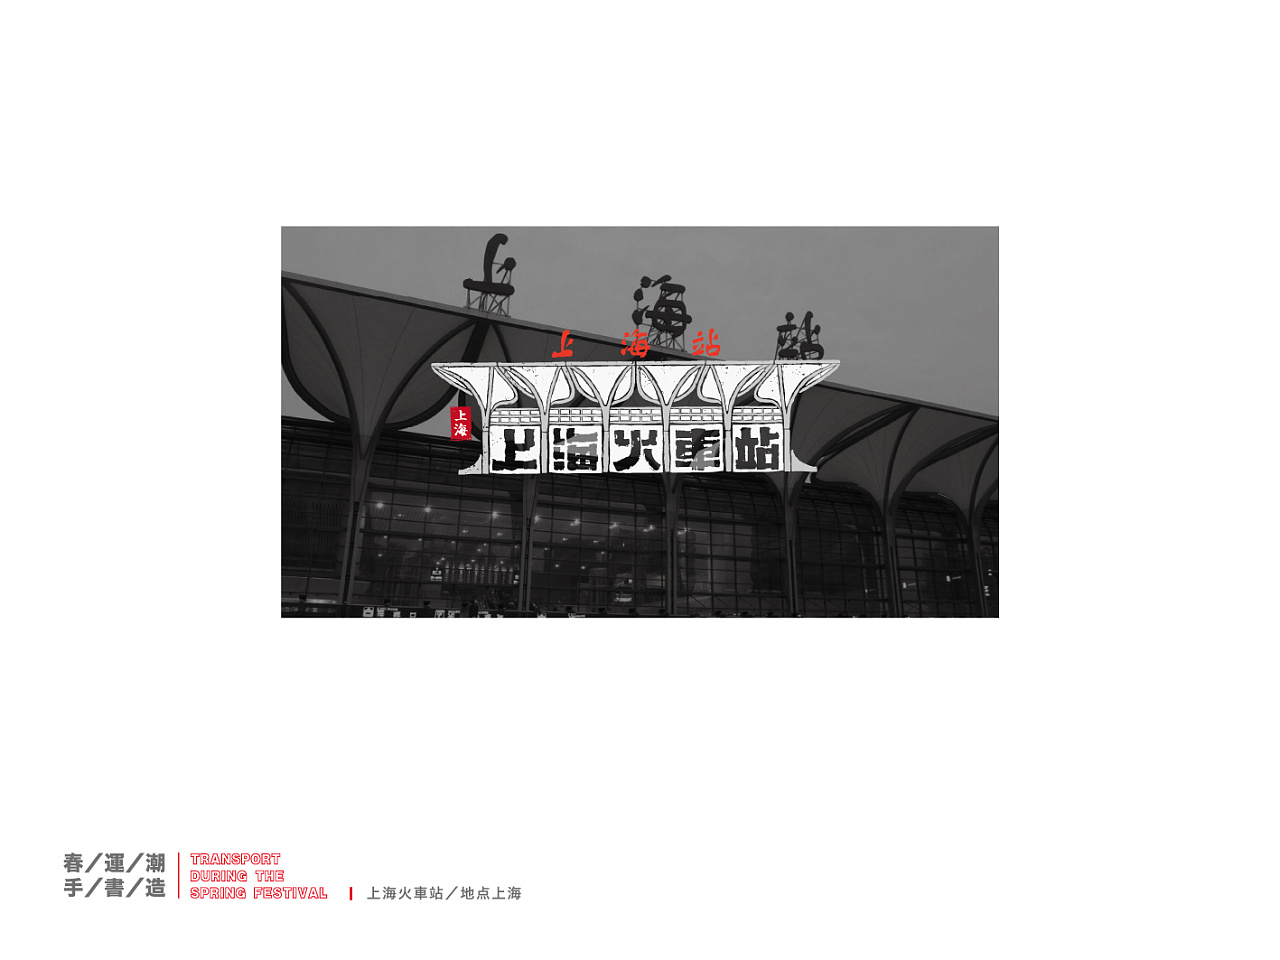 Headline-based fonts-Let's see where is the main battlefield for the Chinese Spring Festival